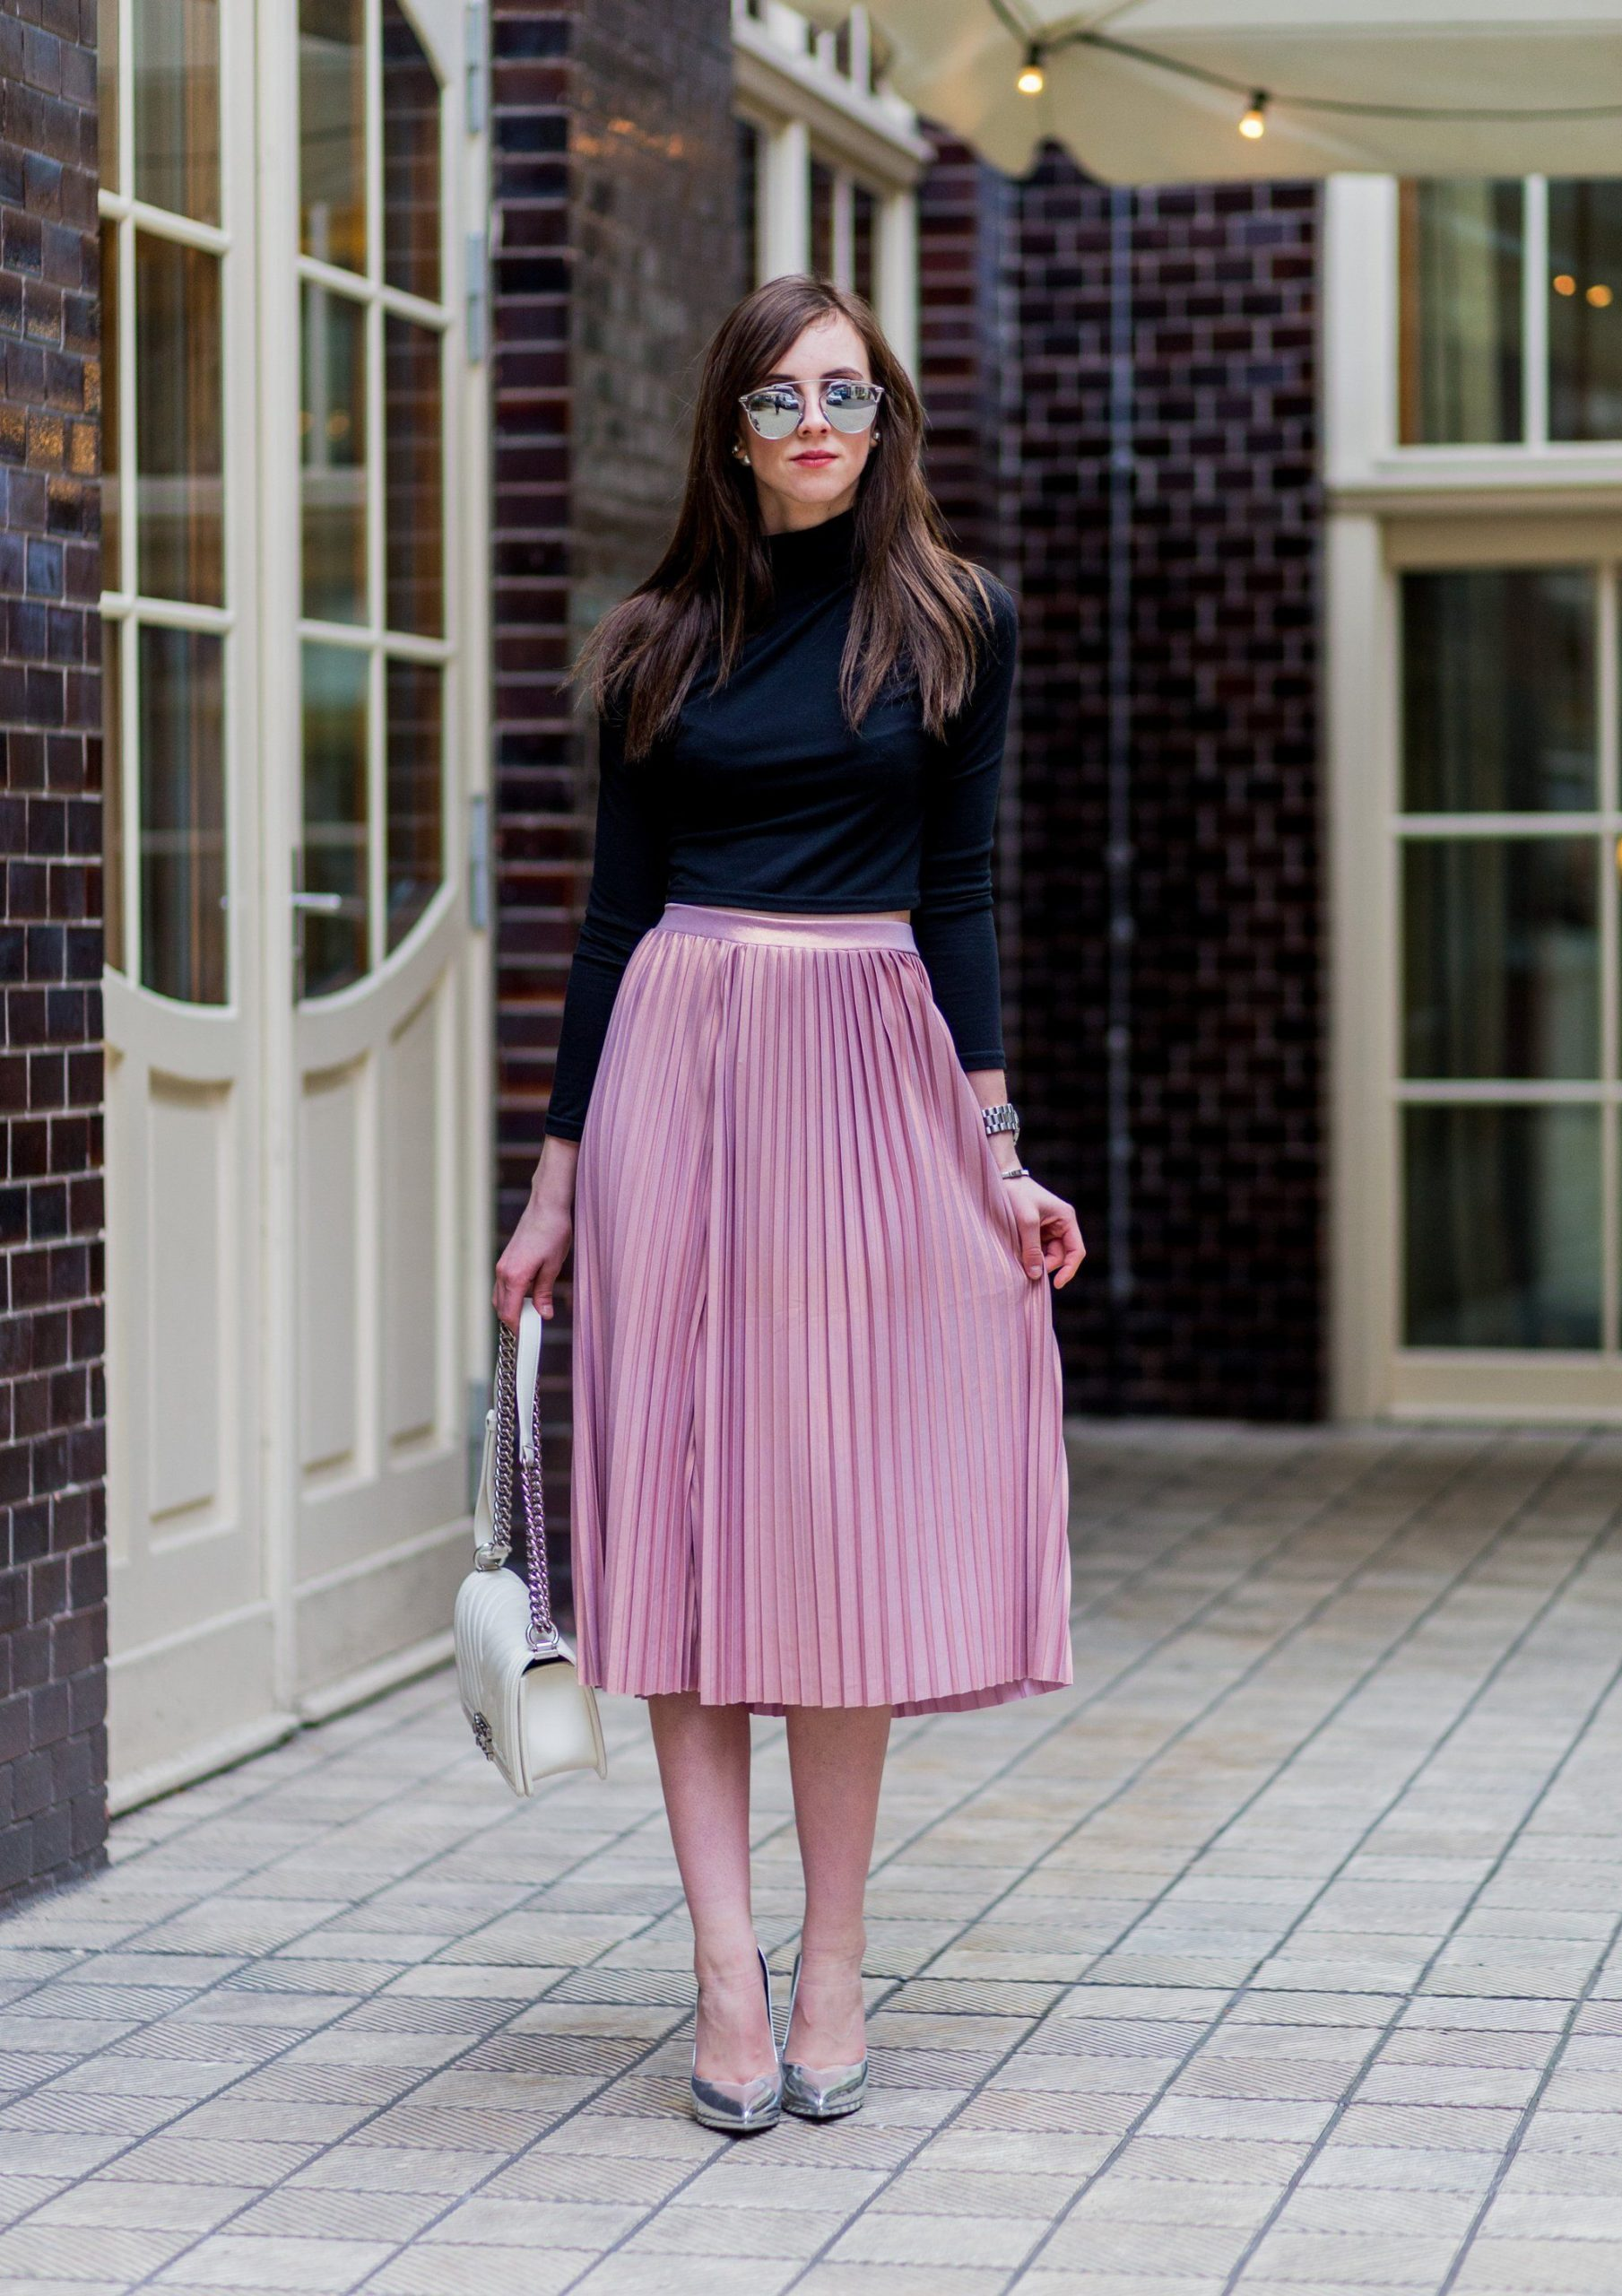 Pleated midi skirt outfits